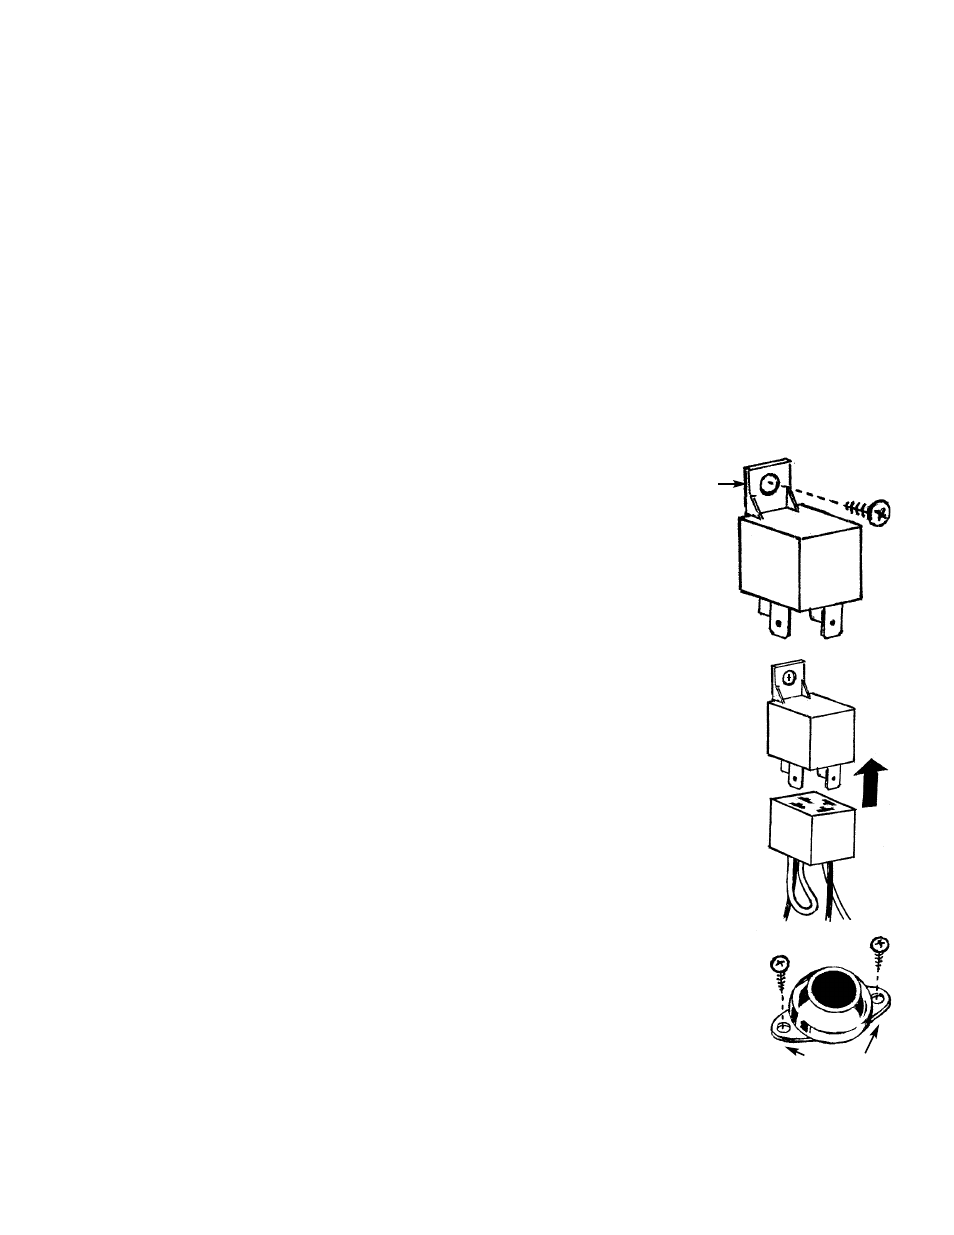 Wolo HWK-1 Air Horn Wiring Kit User Manual | 2 pages | Wolo Wiring Diagrams |  | Manuals Directory